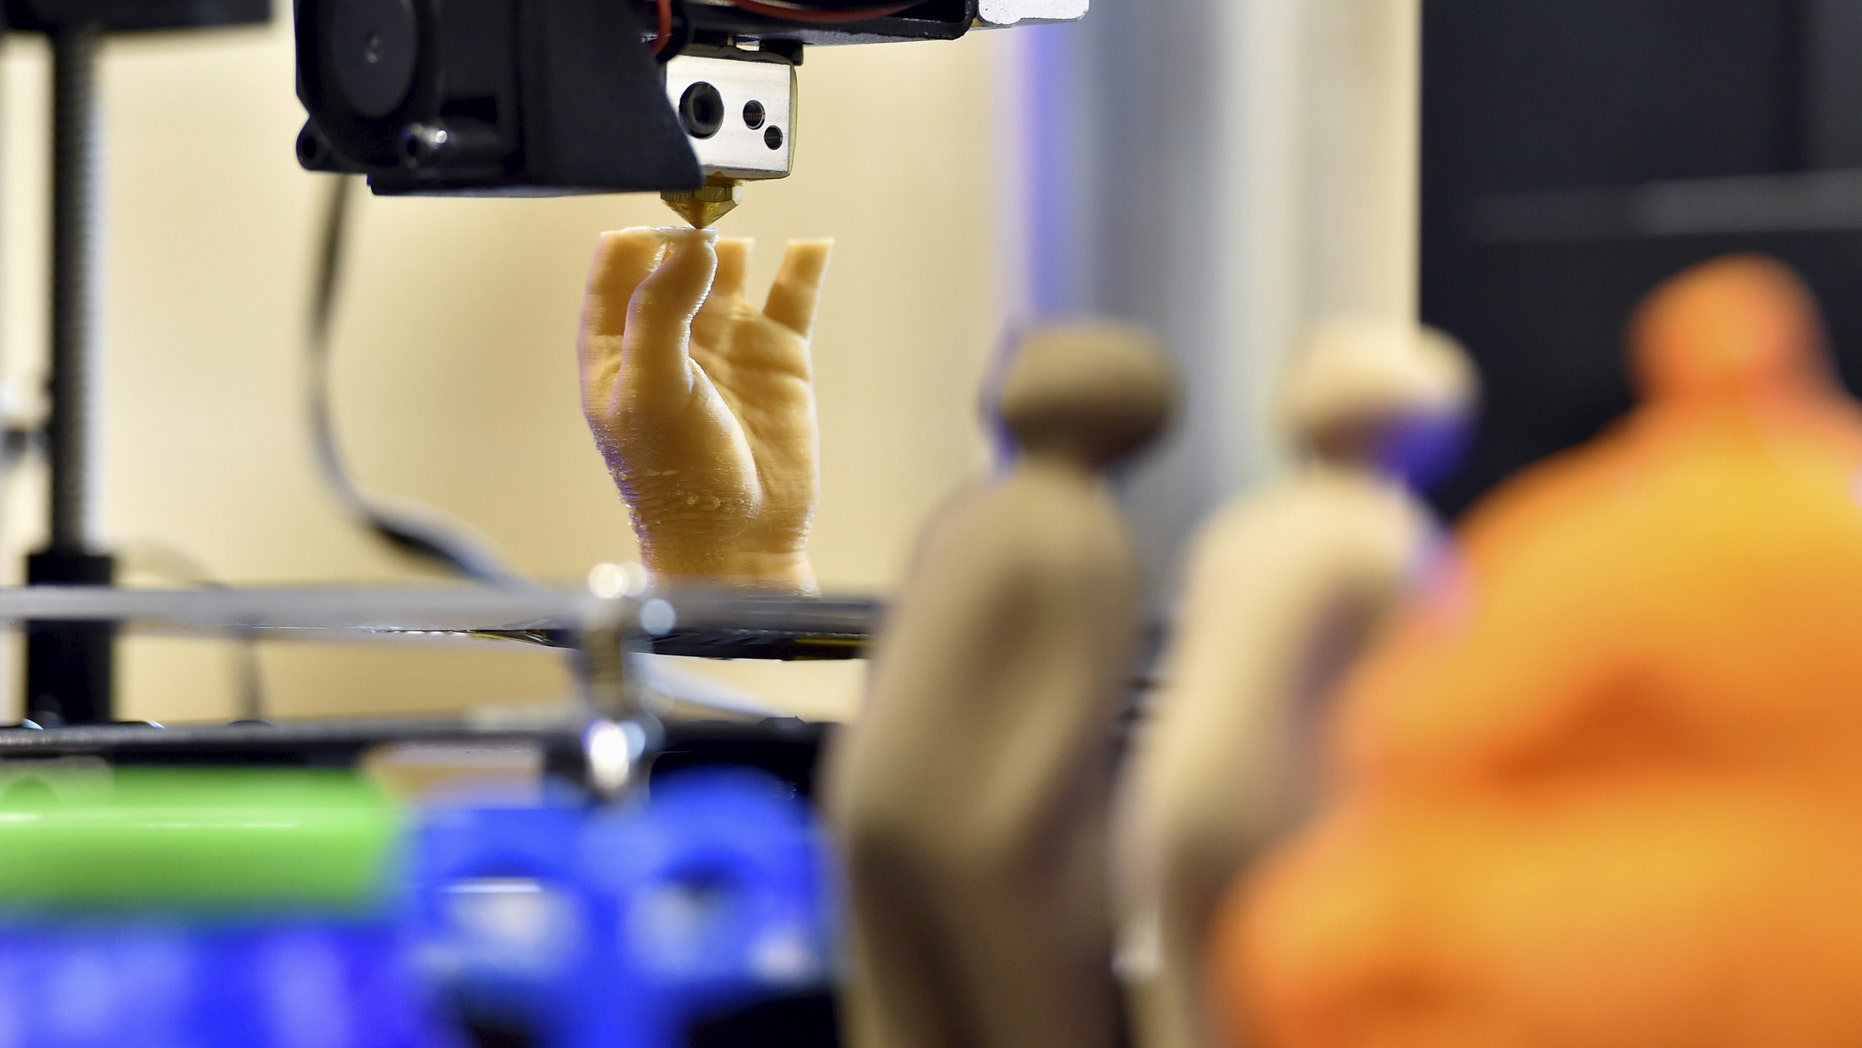 File photo - 3D printed objects are displayed as an artificial hand is being printed during a 3D printing show in Brussels, Belgium, Oct. 18, 2015. (REUTERS/Eric Vidal)